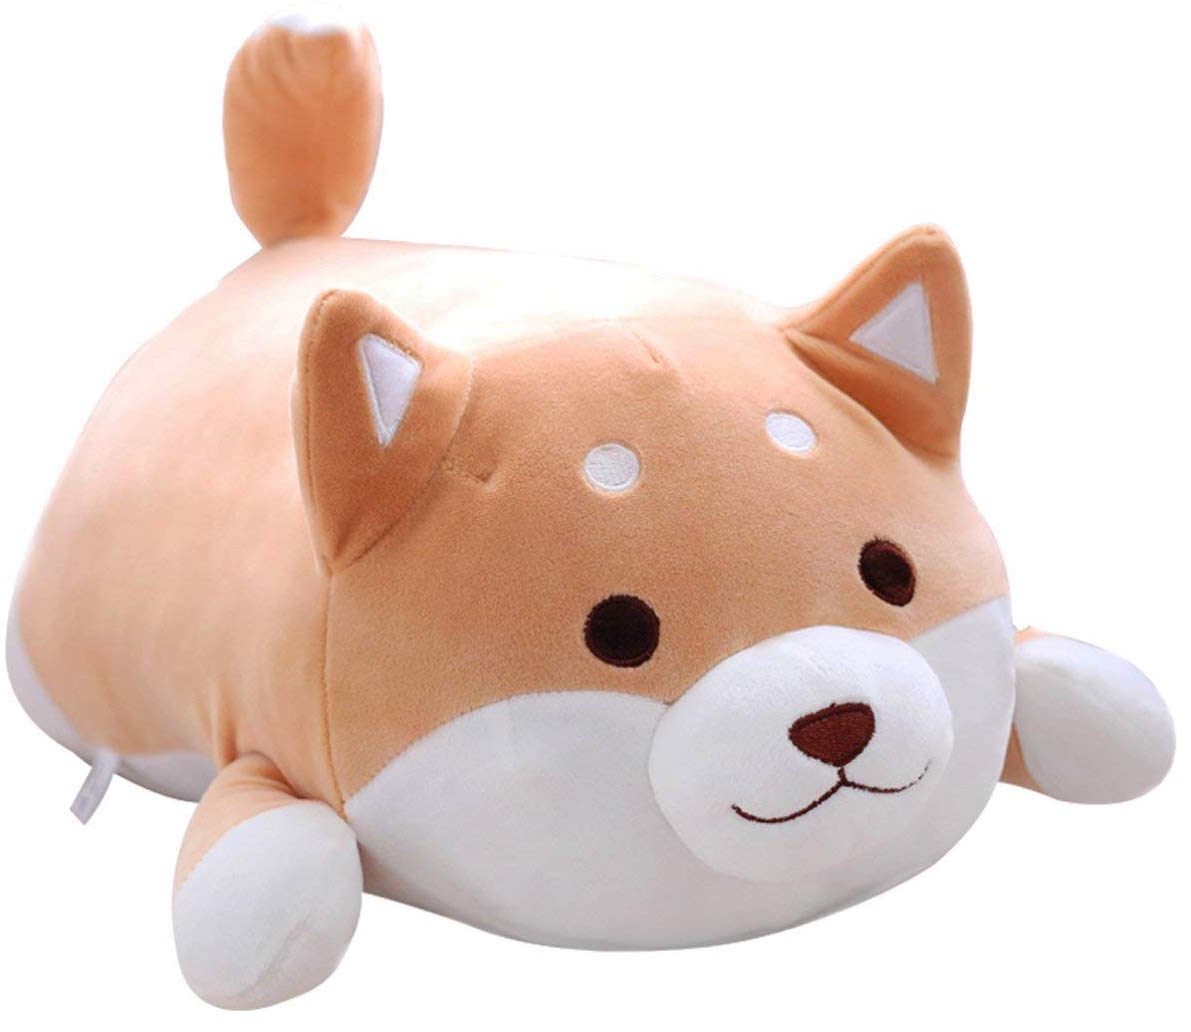 Shiba Inu Dog Plush Pillow, Cute Corgi Akita Stuffed Animals Doll Toy Gifts for Valentine's Gift